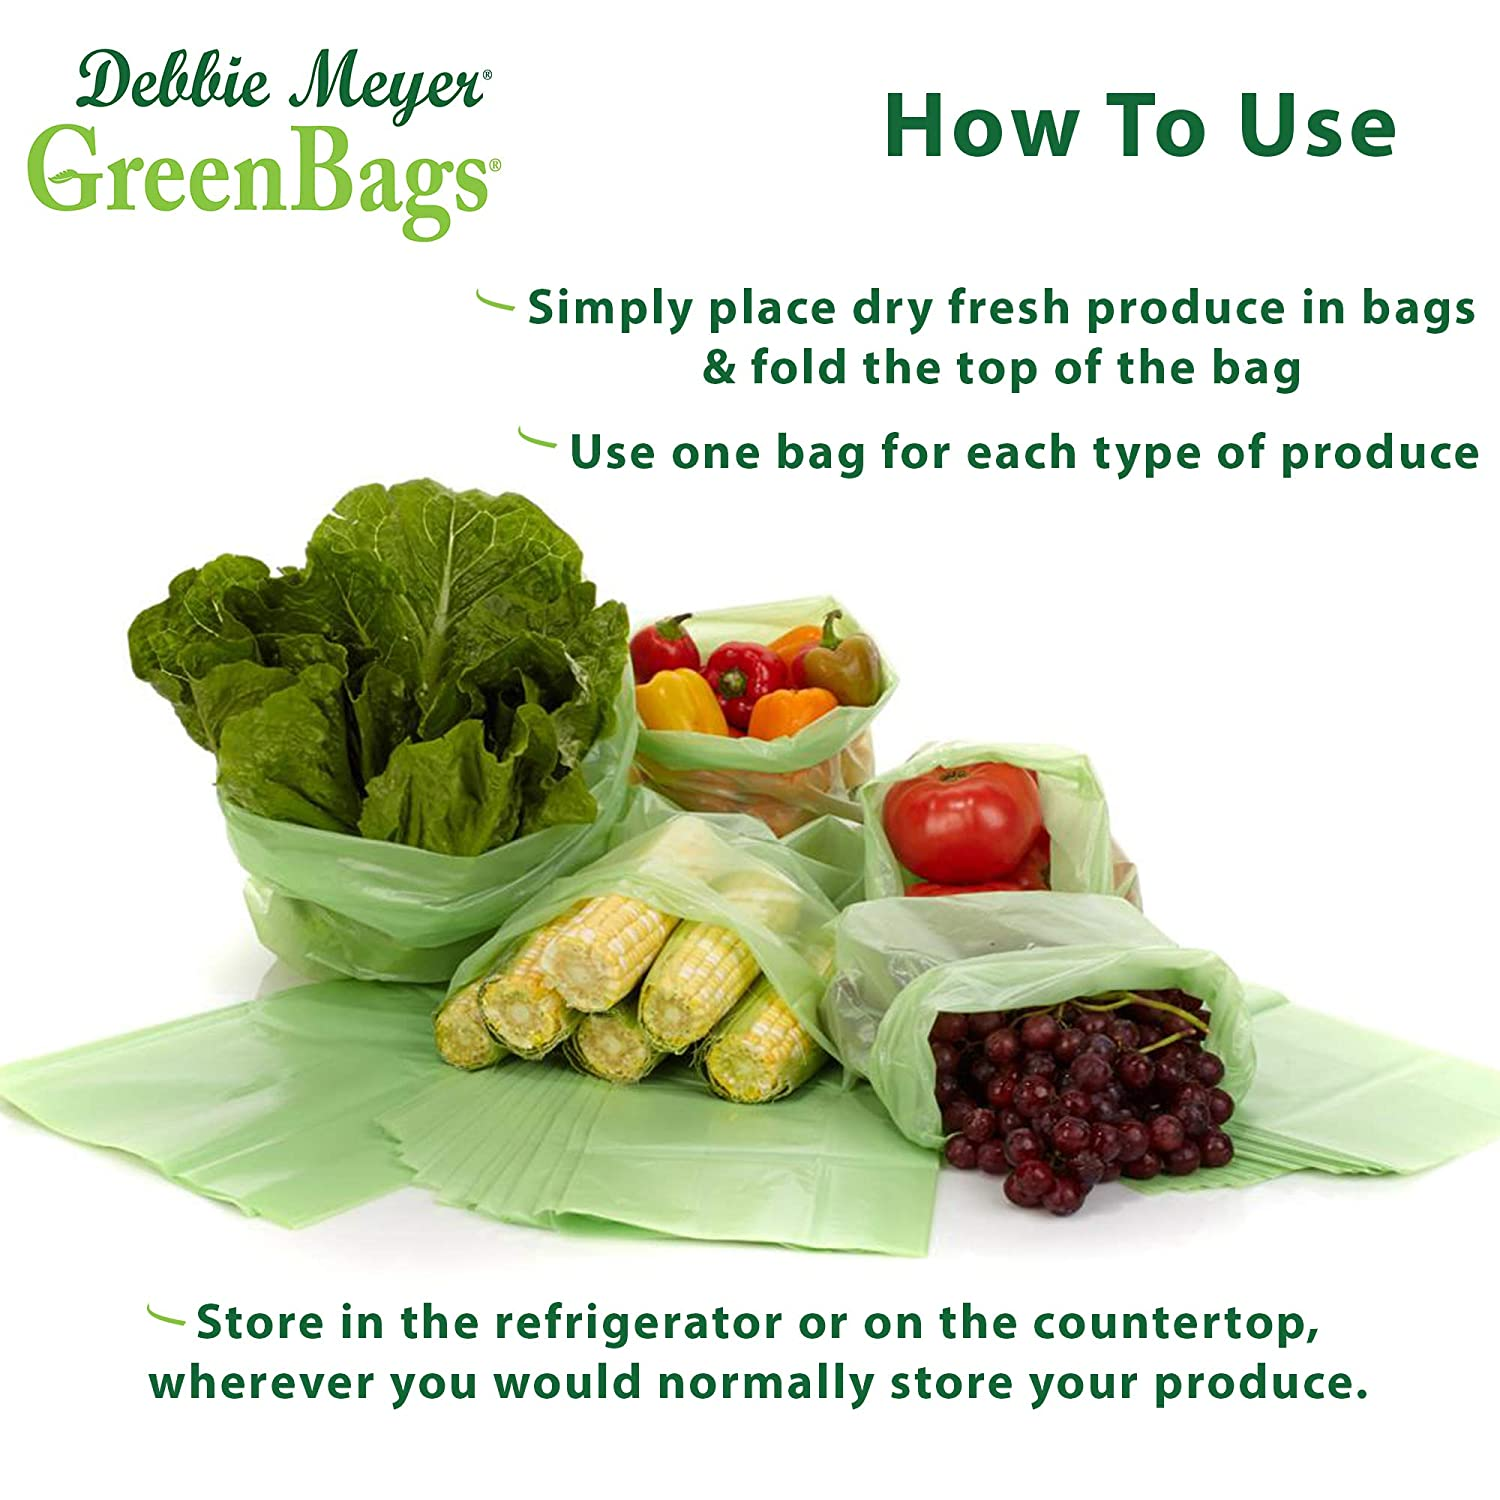 Debbie Meyer GreenBags - Reusable BPA Free Food Storage Bags, Keep Fruits and Vegetables Fresher Longer in these GreenBags! 20pc Set